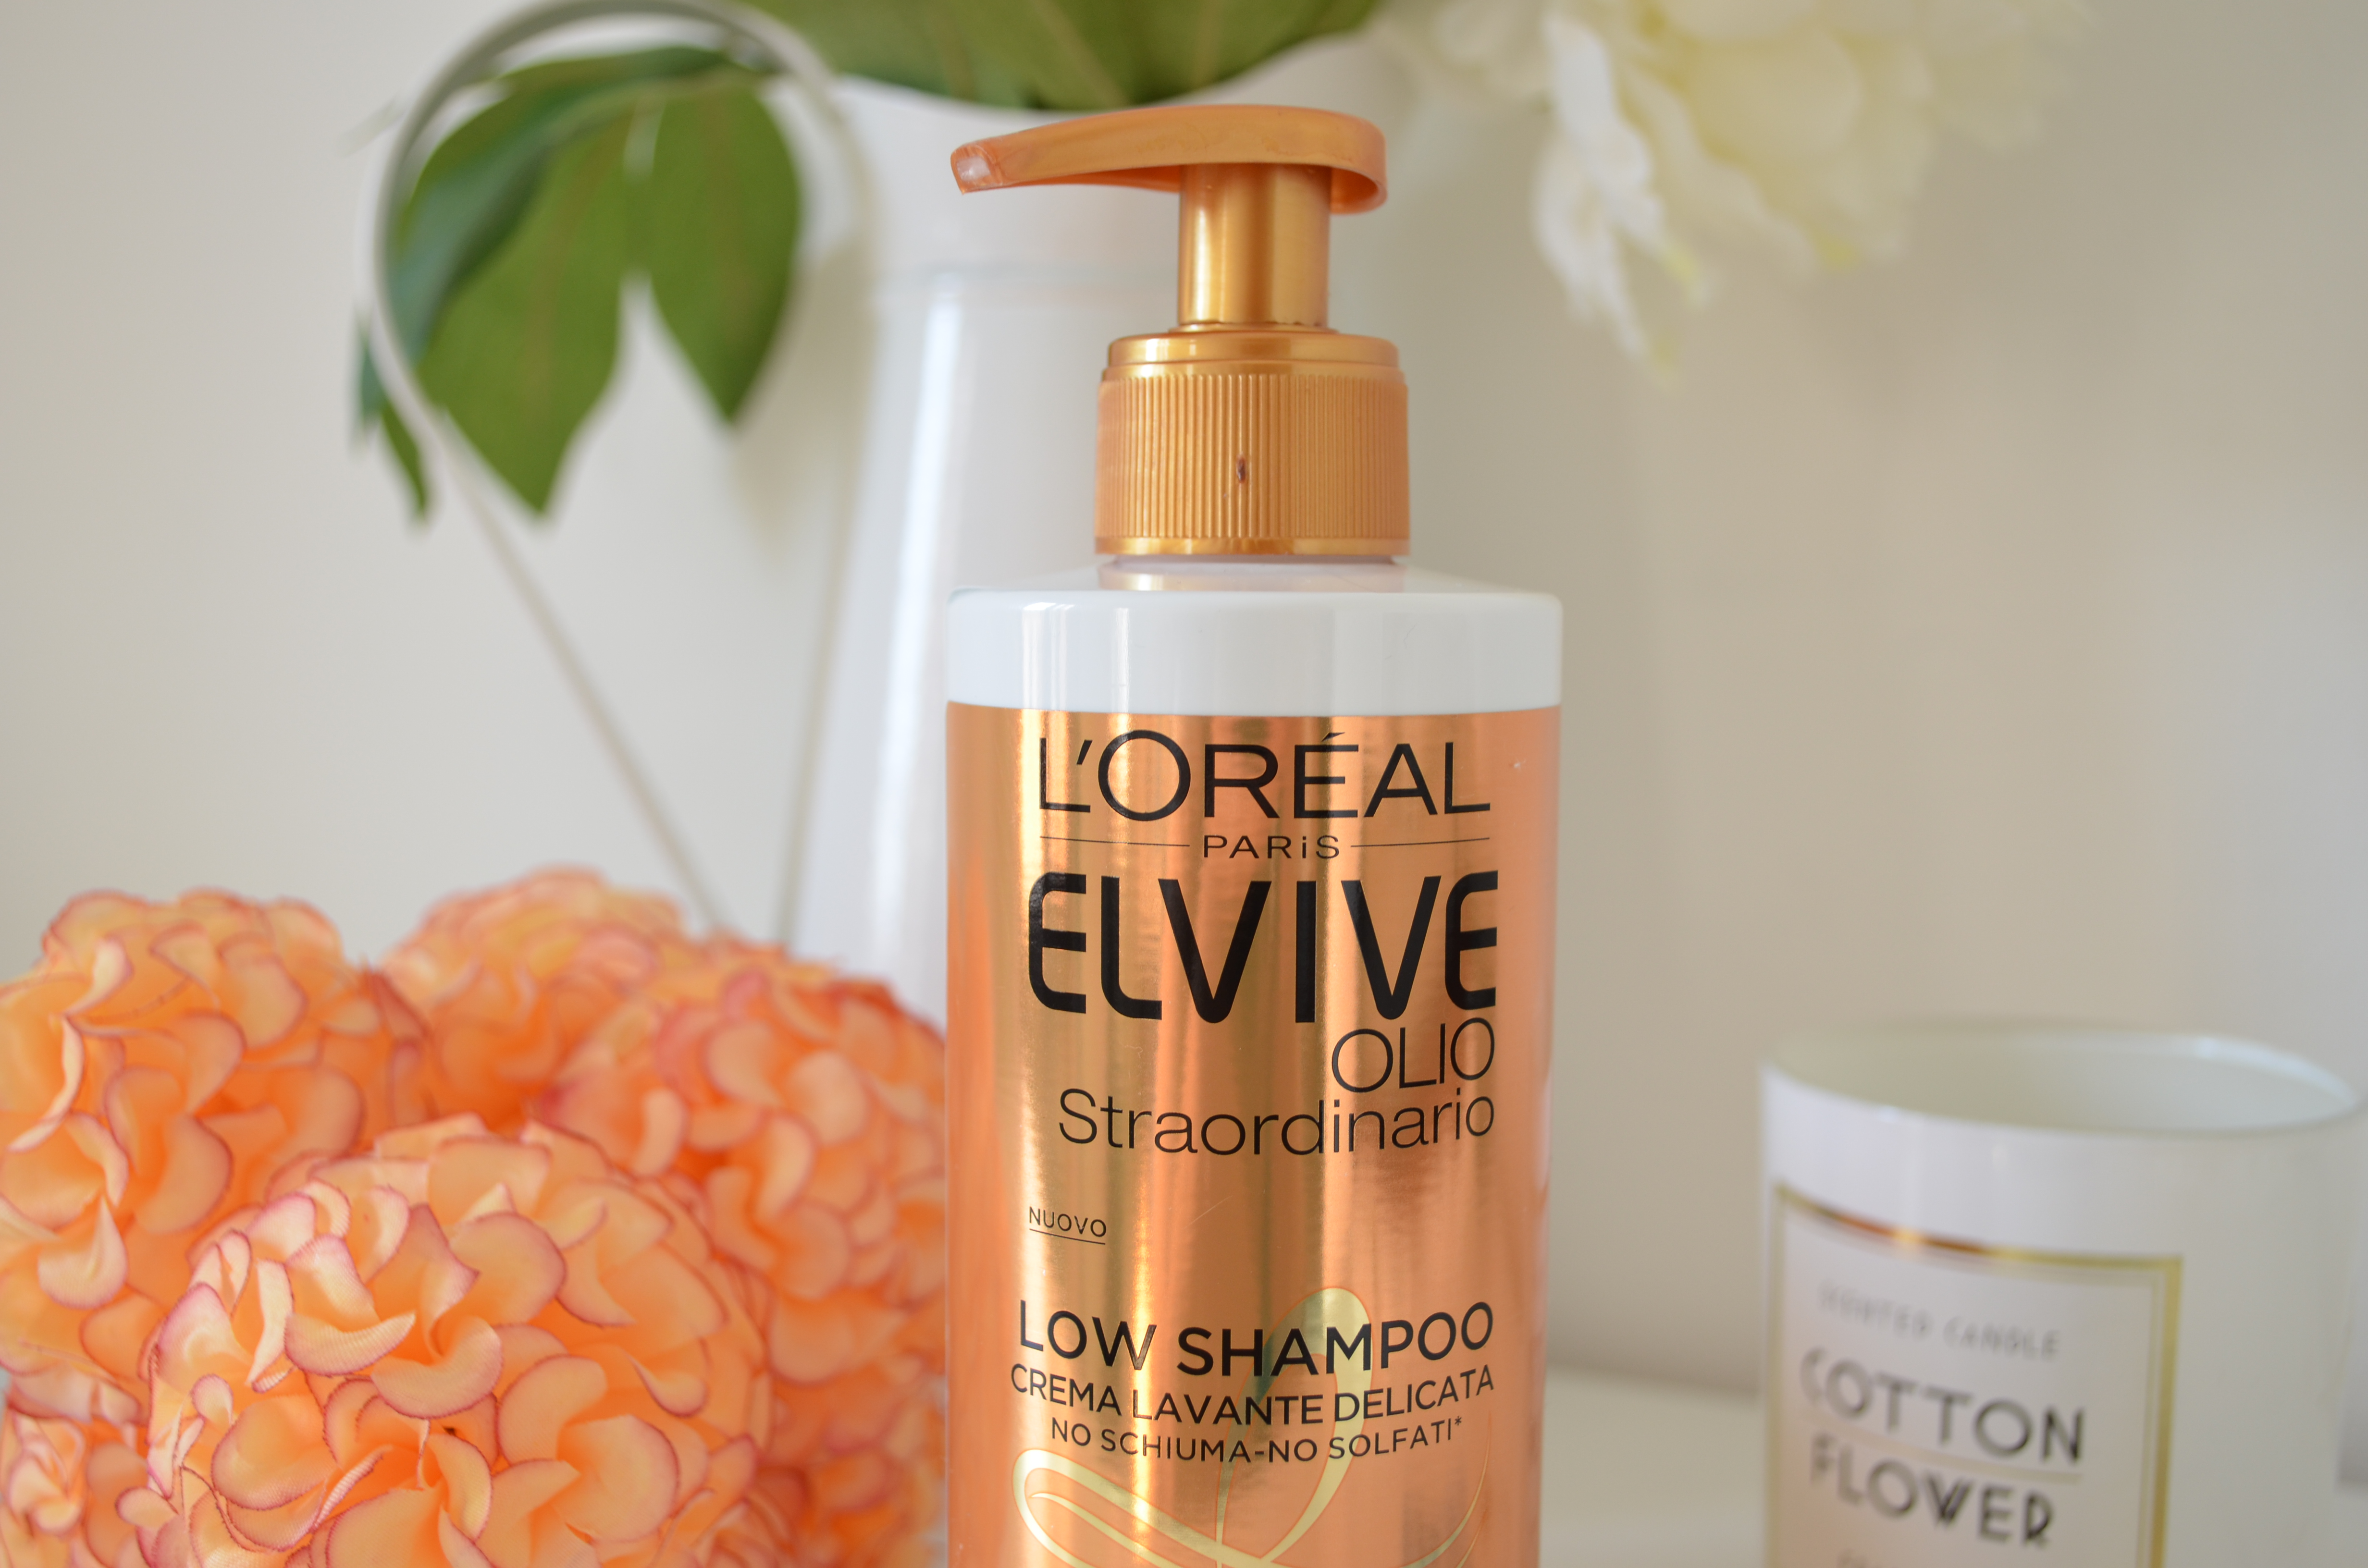 Elvive_Low_Shampoo_L'Oreal_Review_Lily'sColours